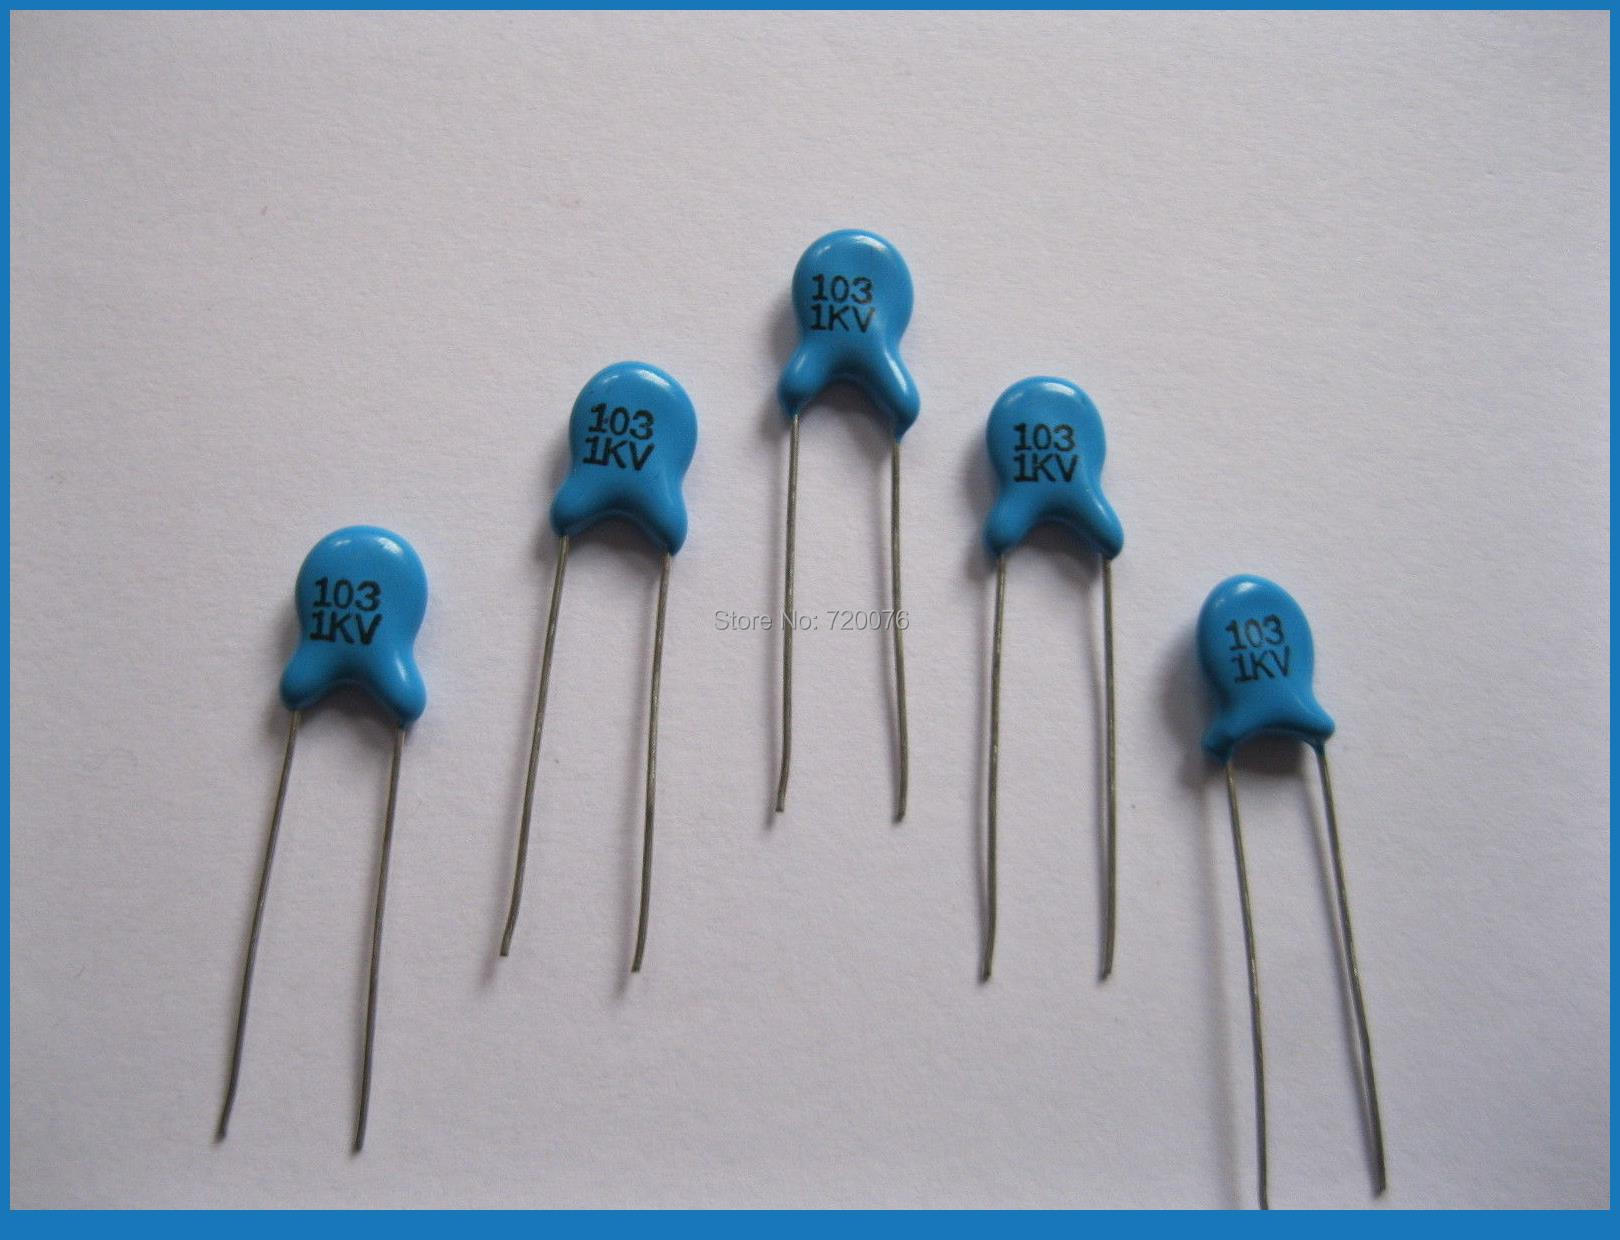 1000 pcs Ceramic Disc Capacitors 1000V 1KV 103pF 0.01uF